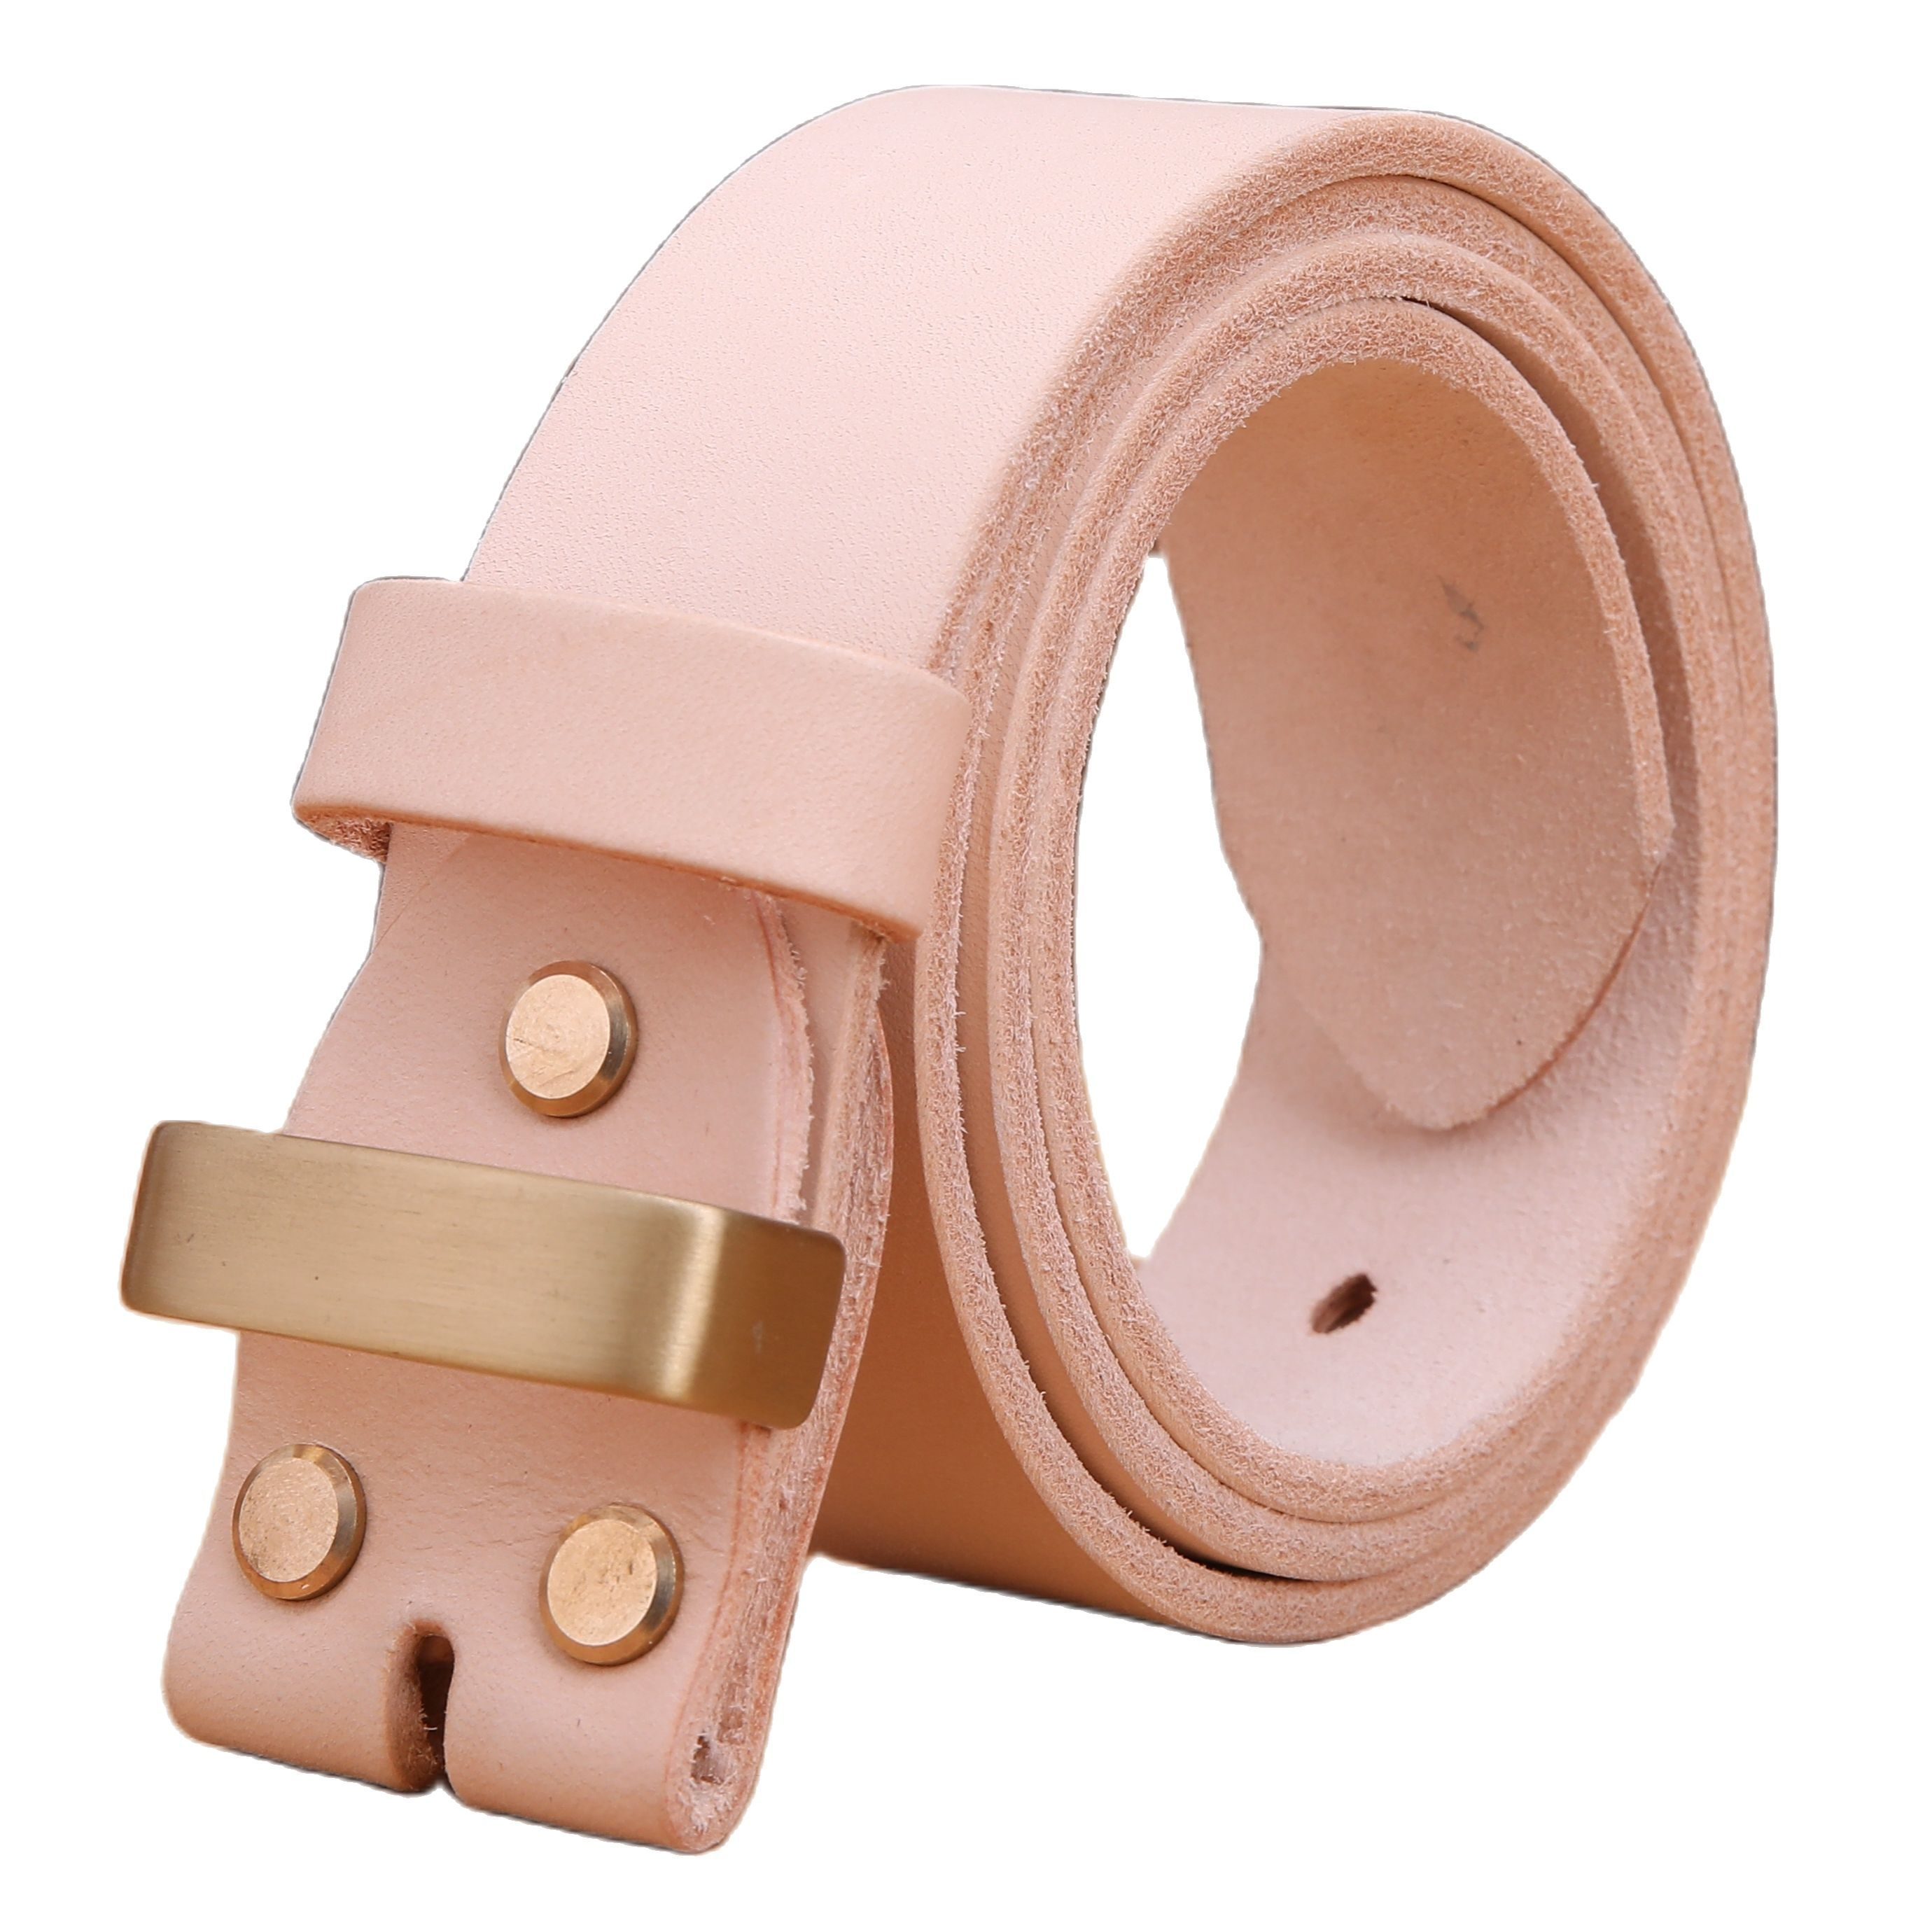 vegetabel tanned 100% genuine leather belt without gold pin buckle for mens belts luxury cowboys match jeans 3.8 cm high quality